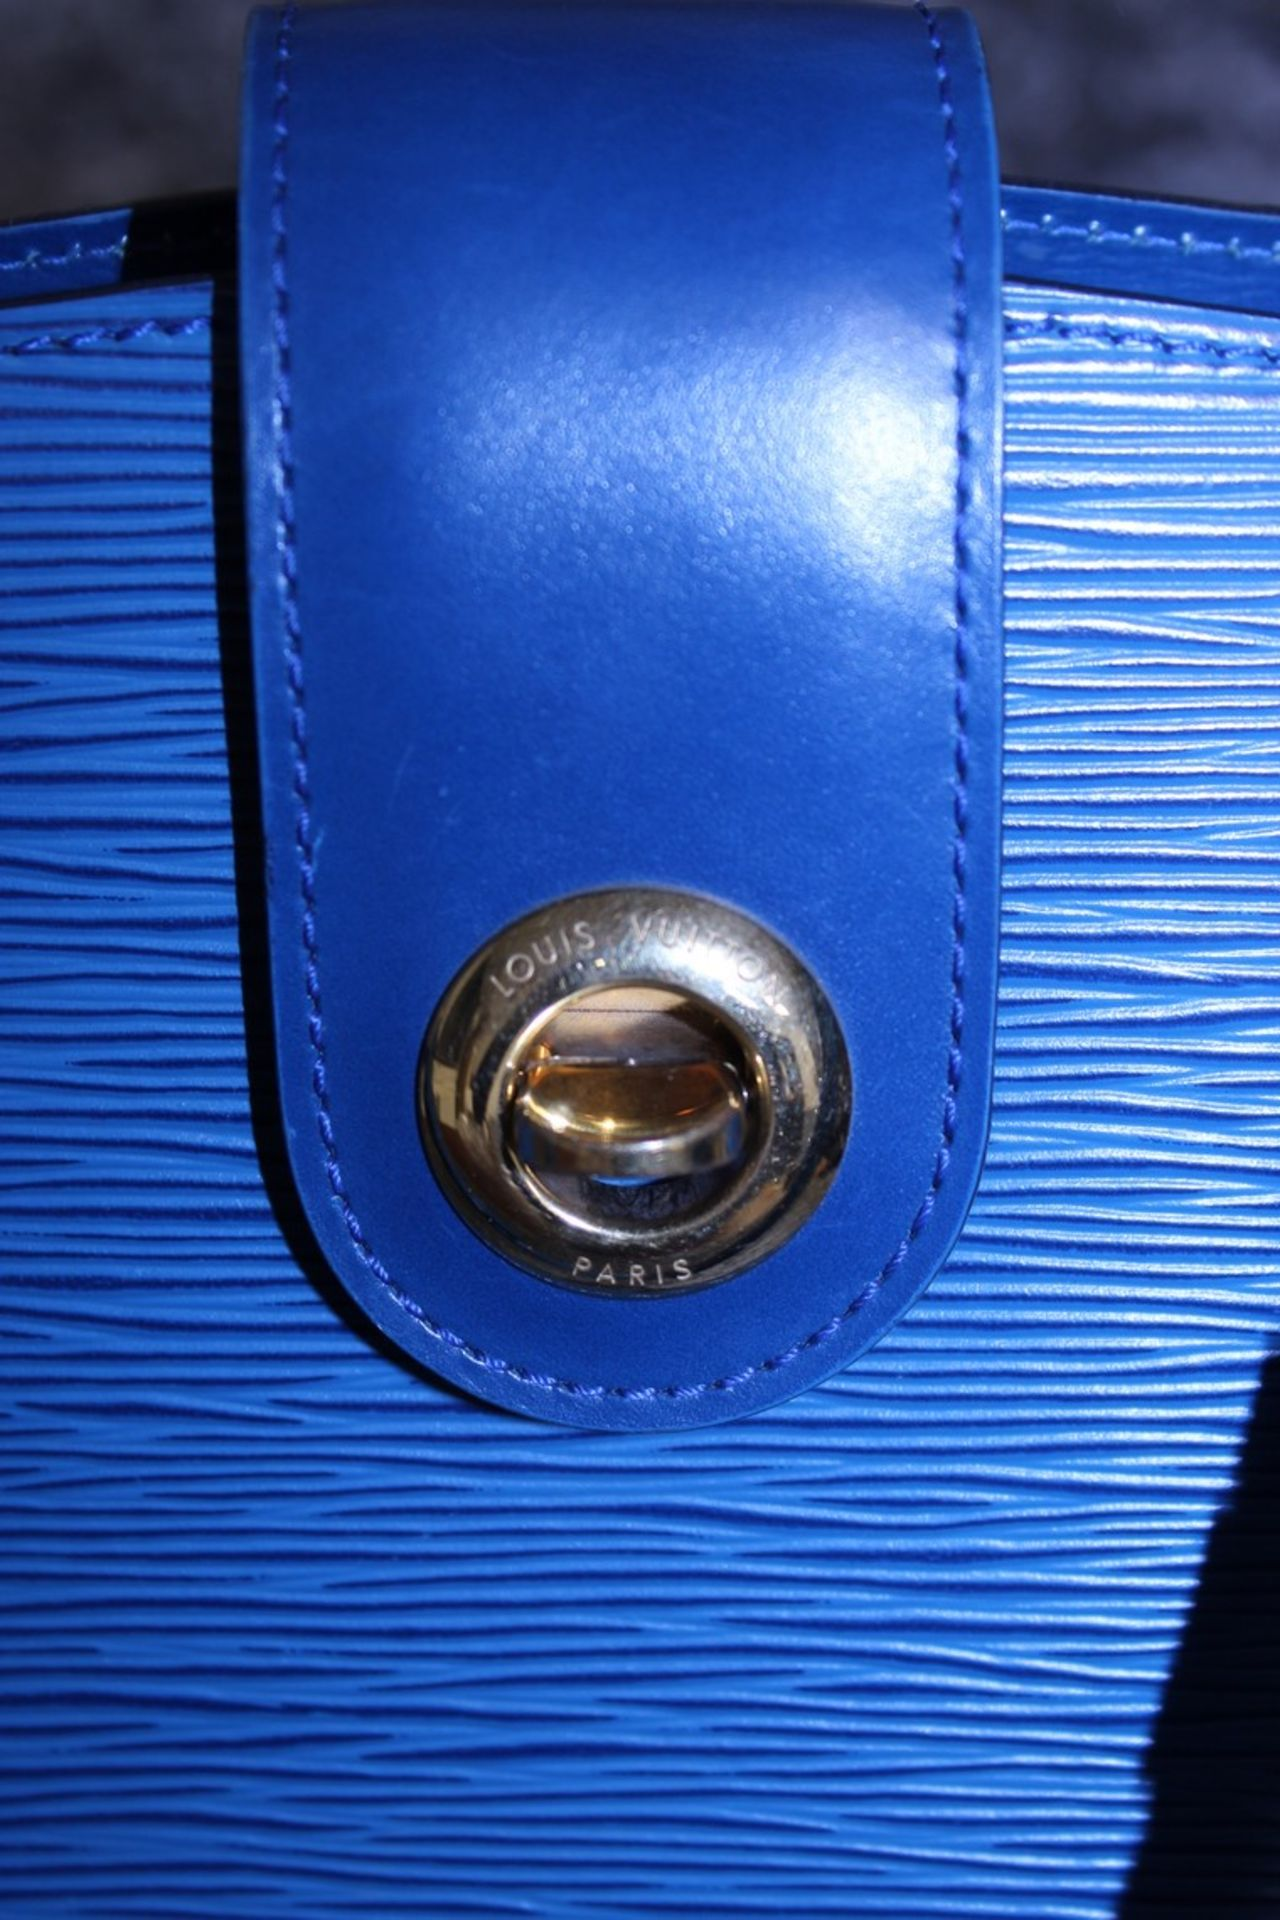 RRP £1,500 Louis Vuitton Cluny Blue Calf Leather Shoulder Bag With Blue Leather Handles, - Image 4 of 5